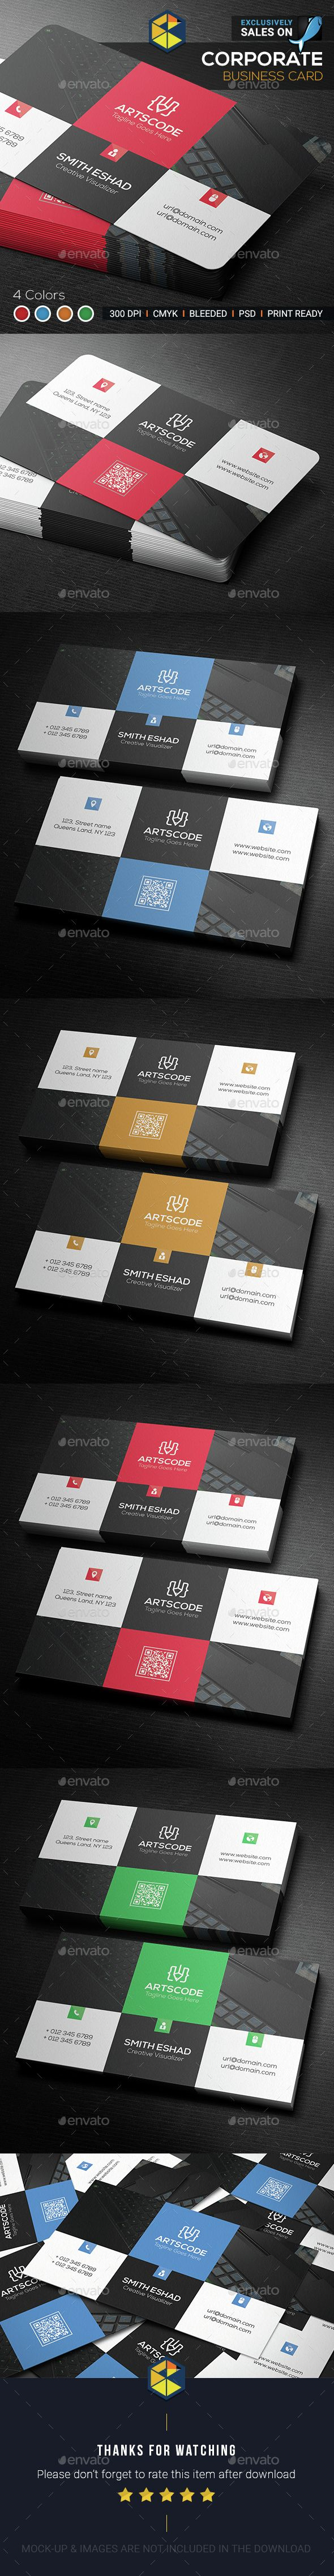 10 best business name and logo inspiration images on pinterest